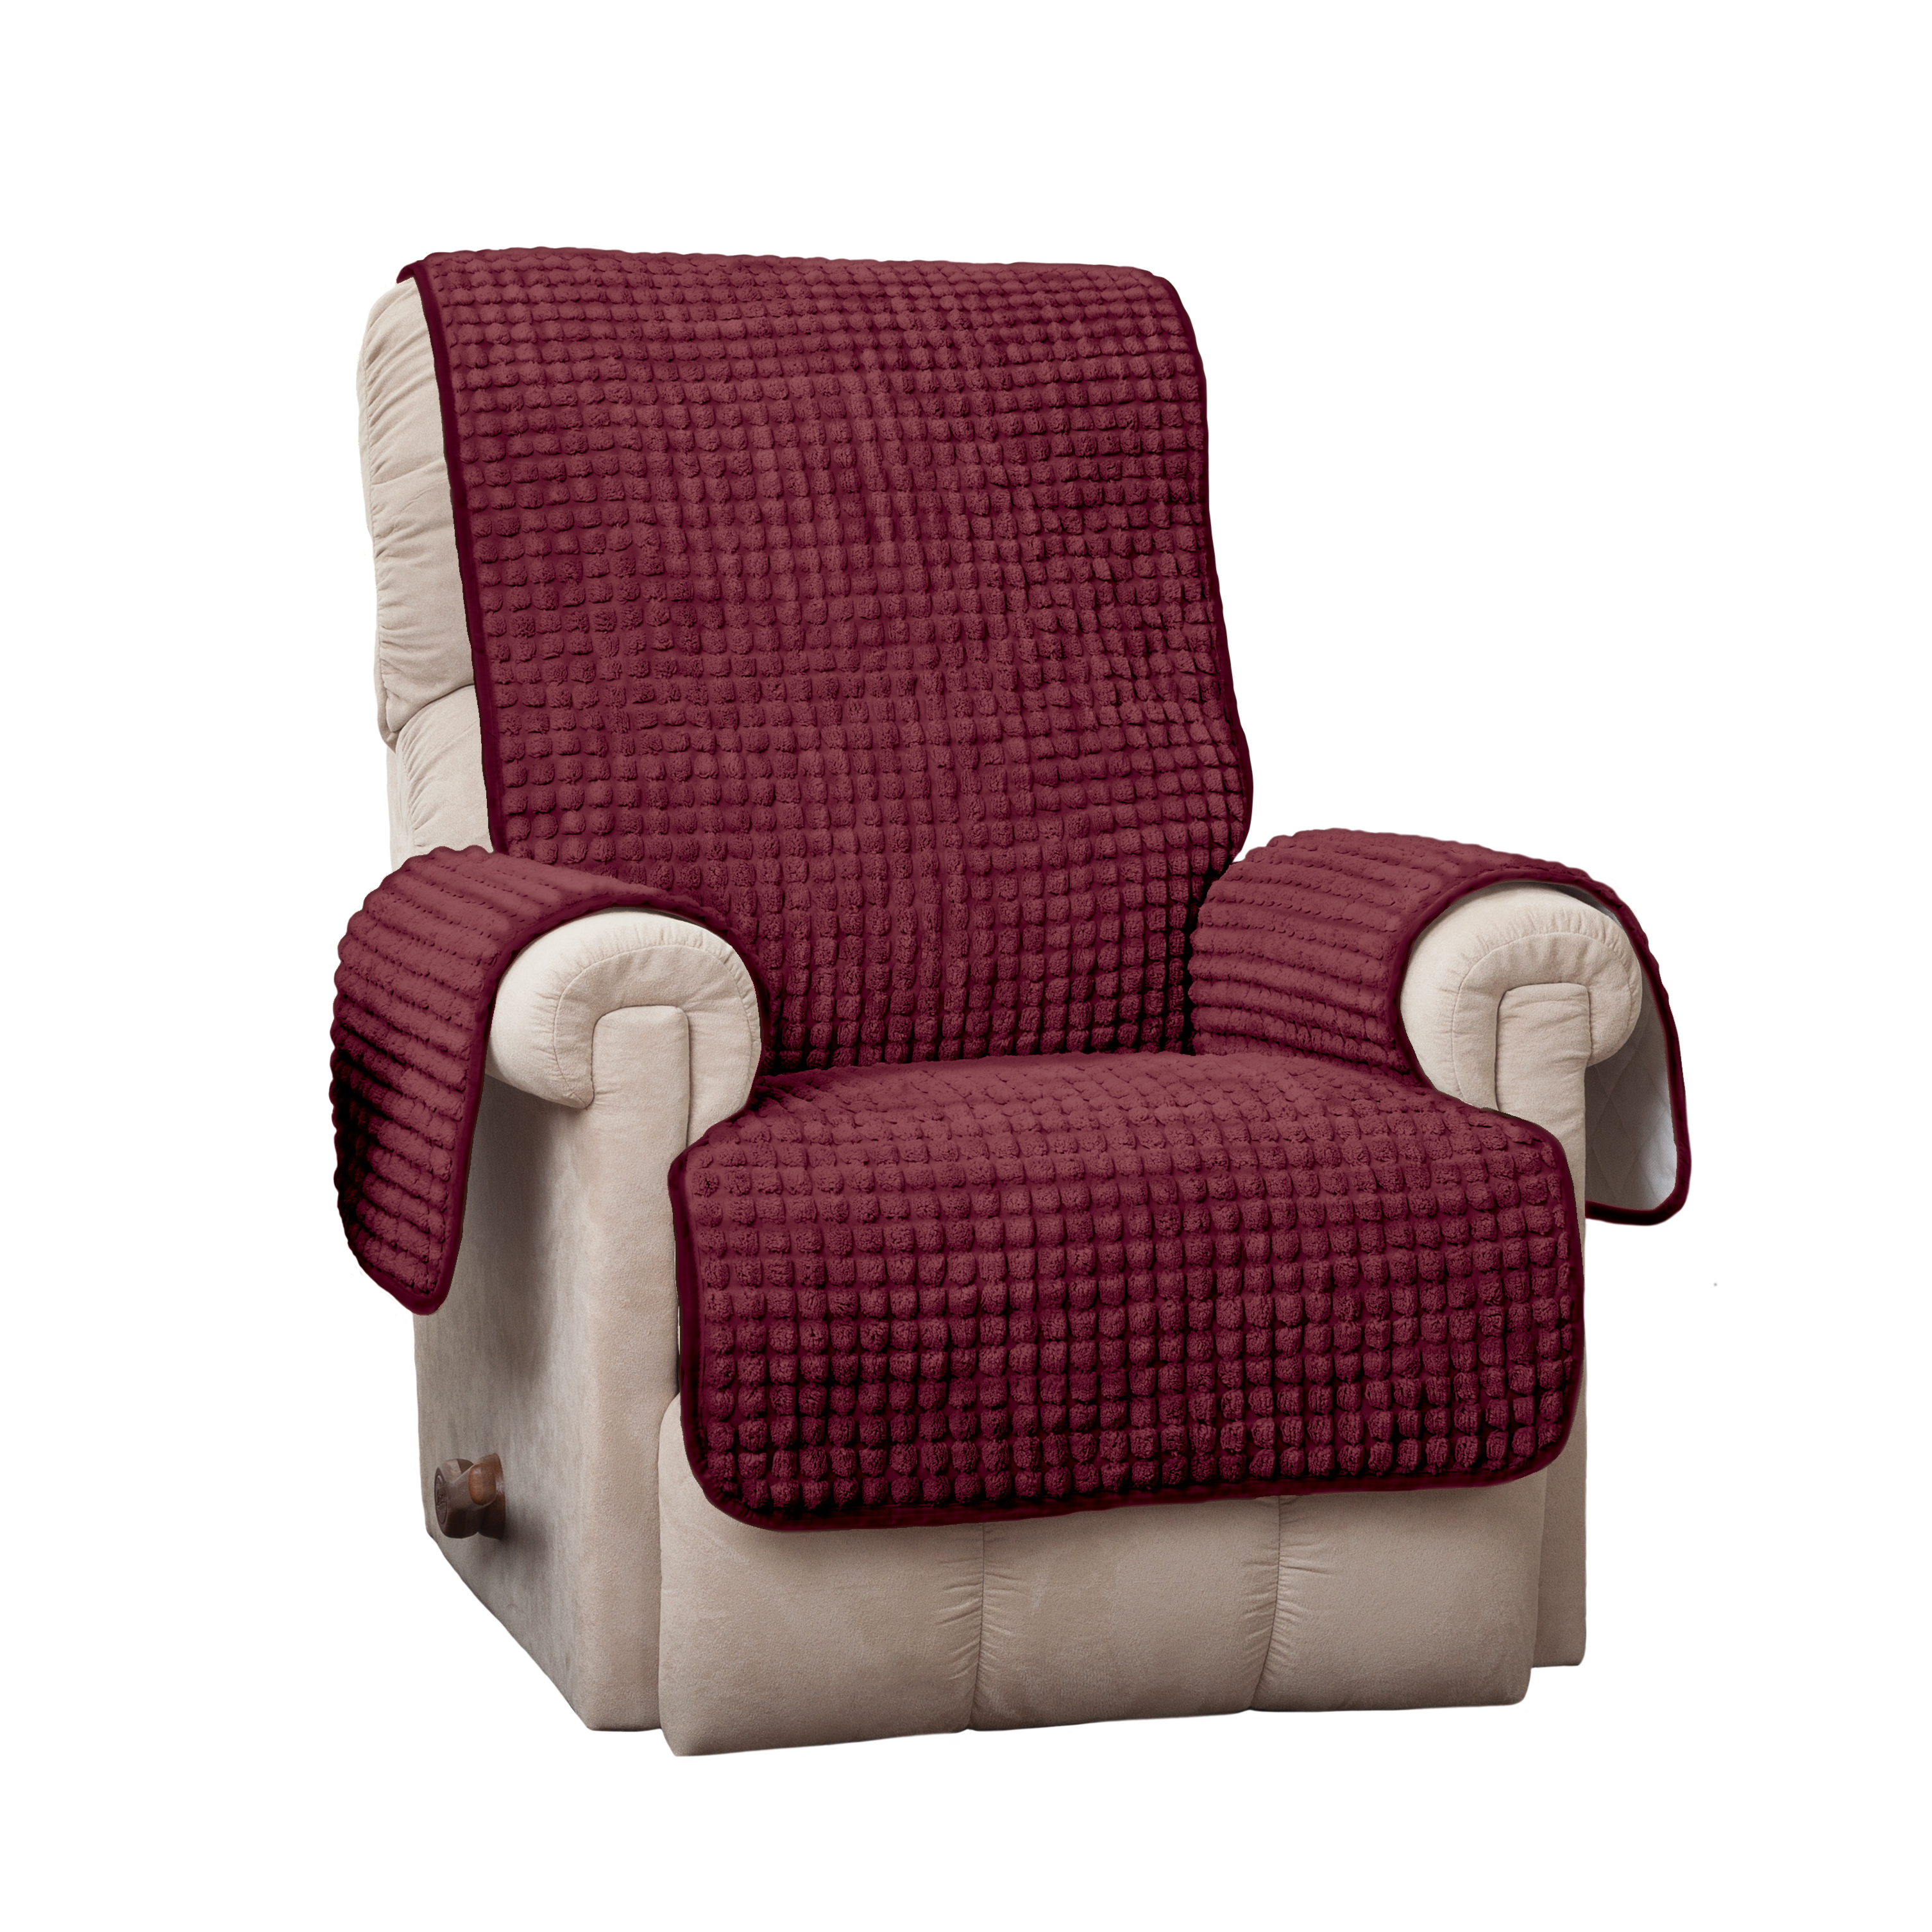 Innovative Textile Solutions Puff Recliner/Wing Furniture Cover Slipcover